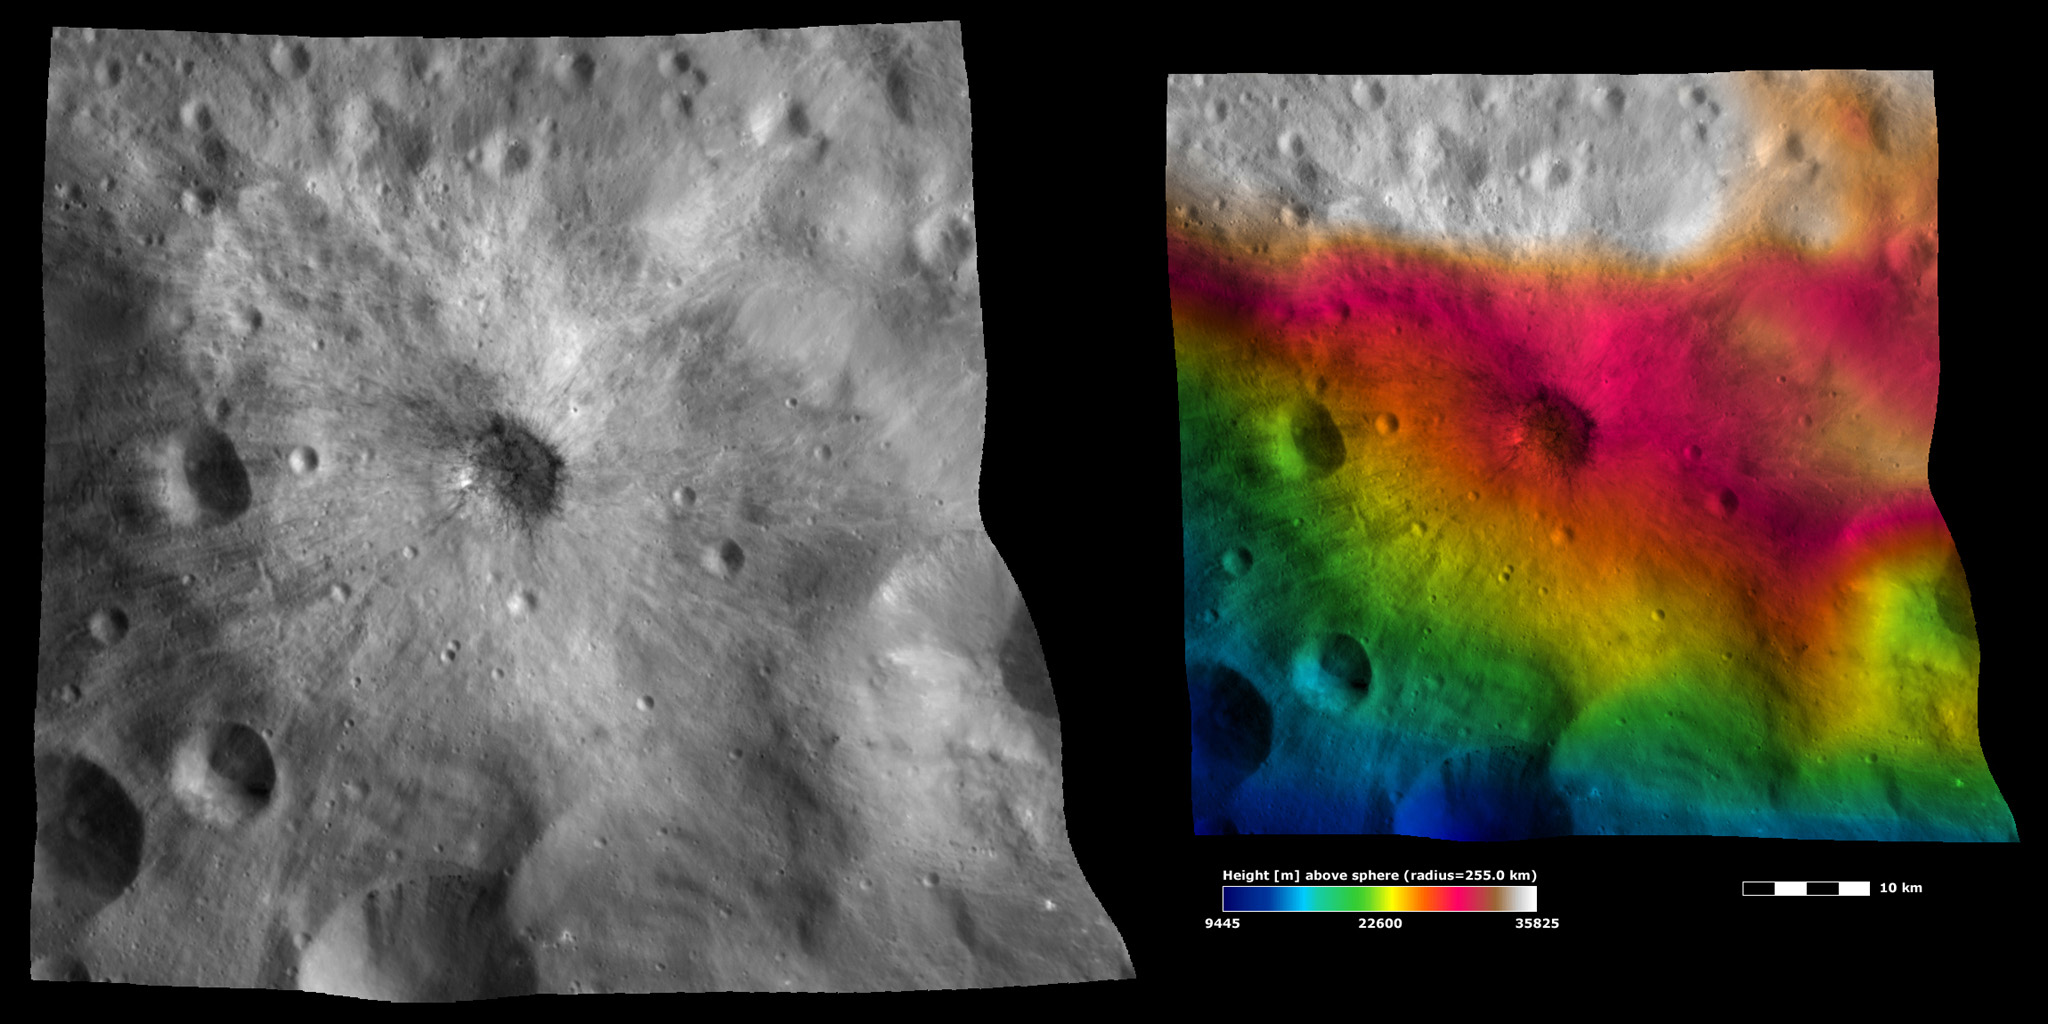 Apparent Brightness and Topography Images of Vibidia Crater